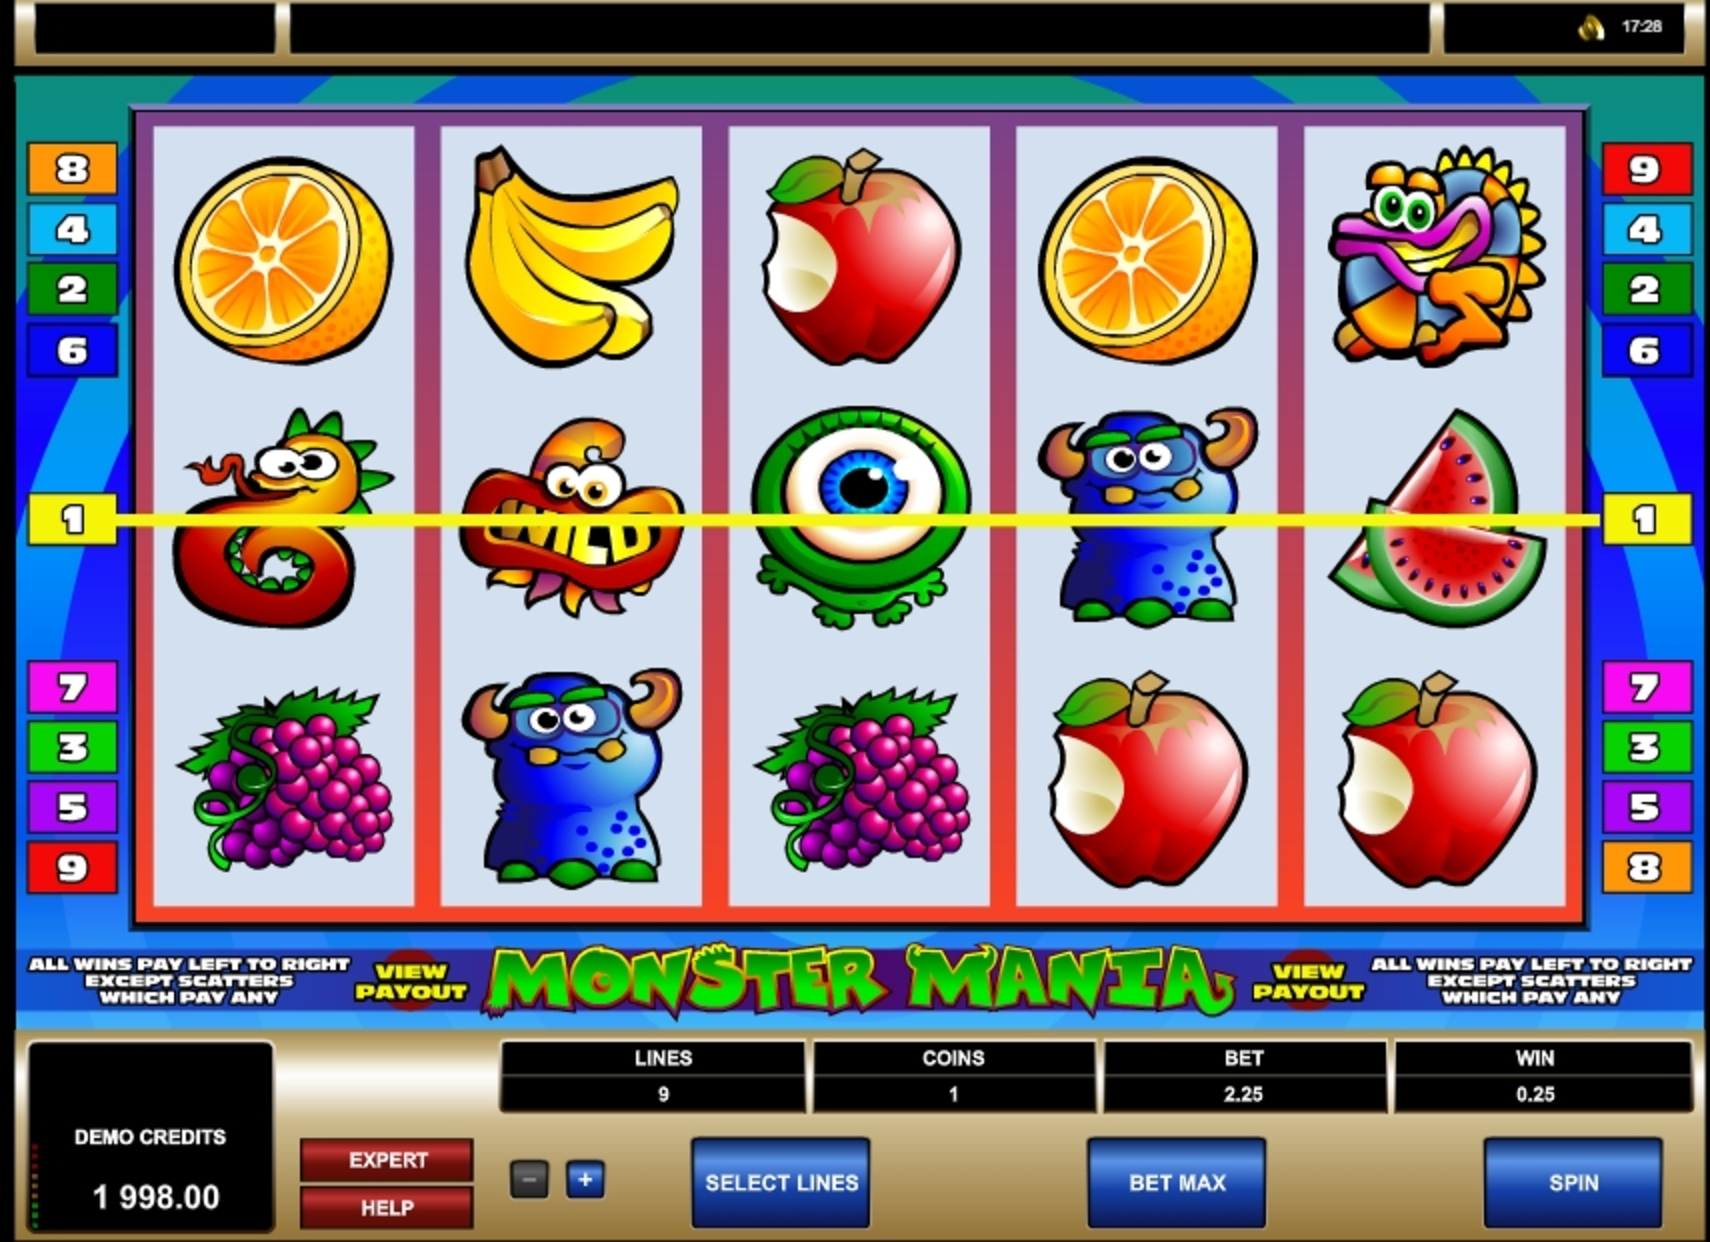 Win Money in Monster Mania Free Slot Game by Microgaming